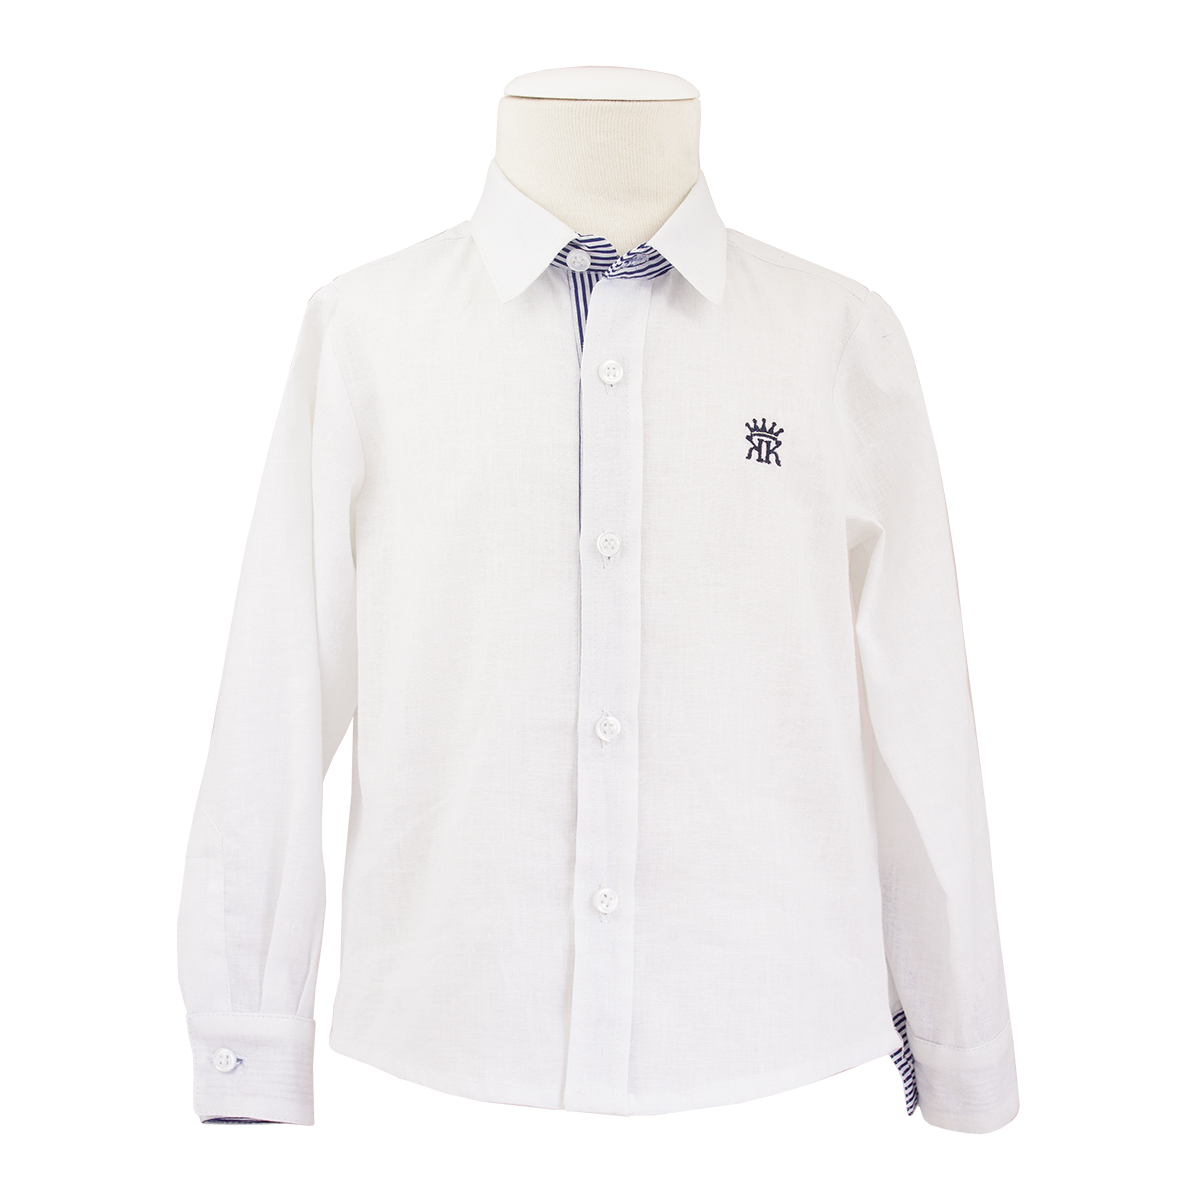 Kiriki Boys White & Navy Shirt